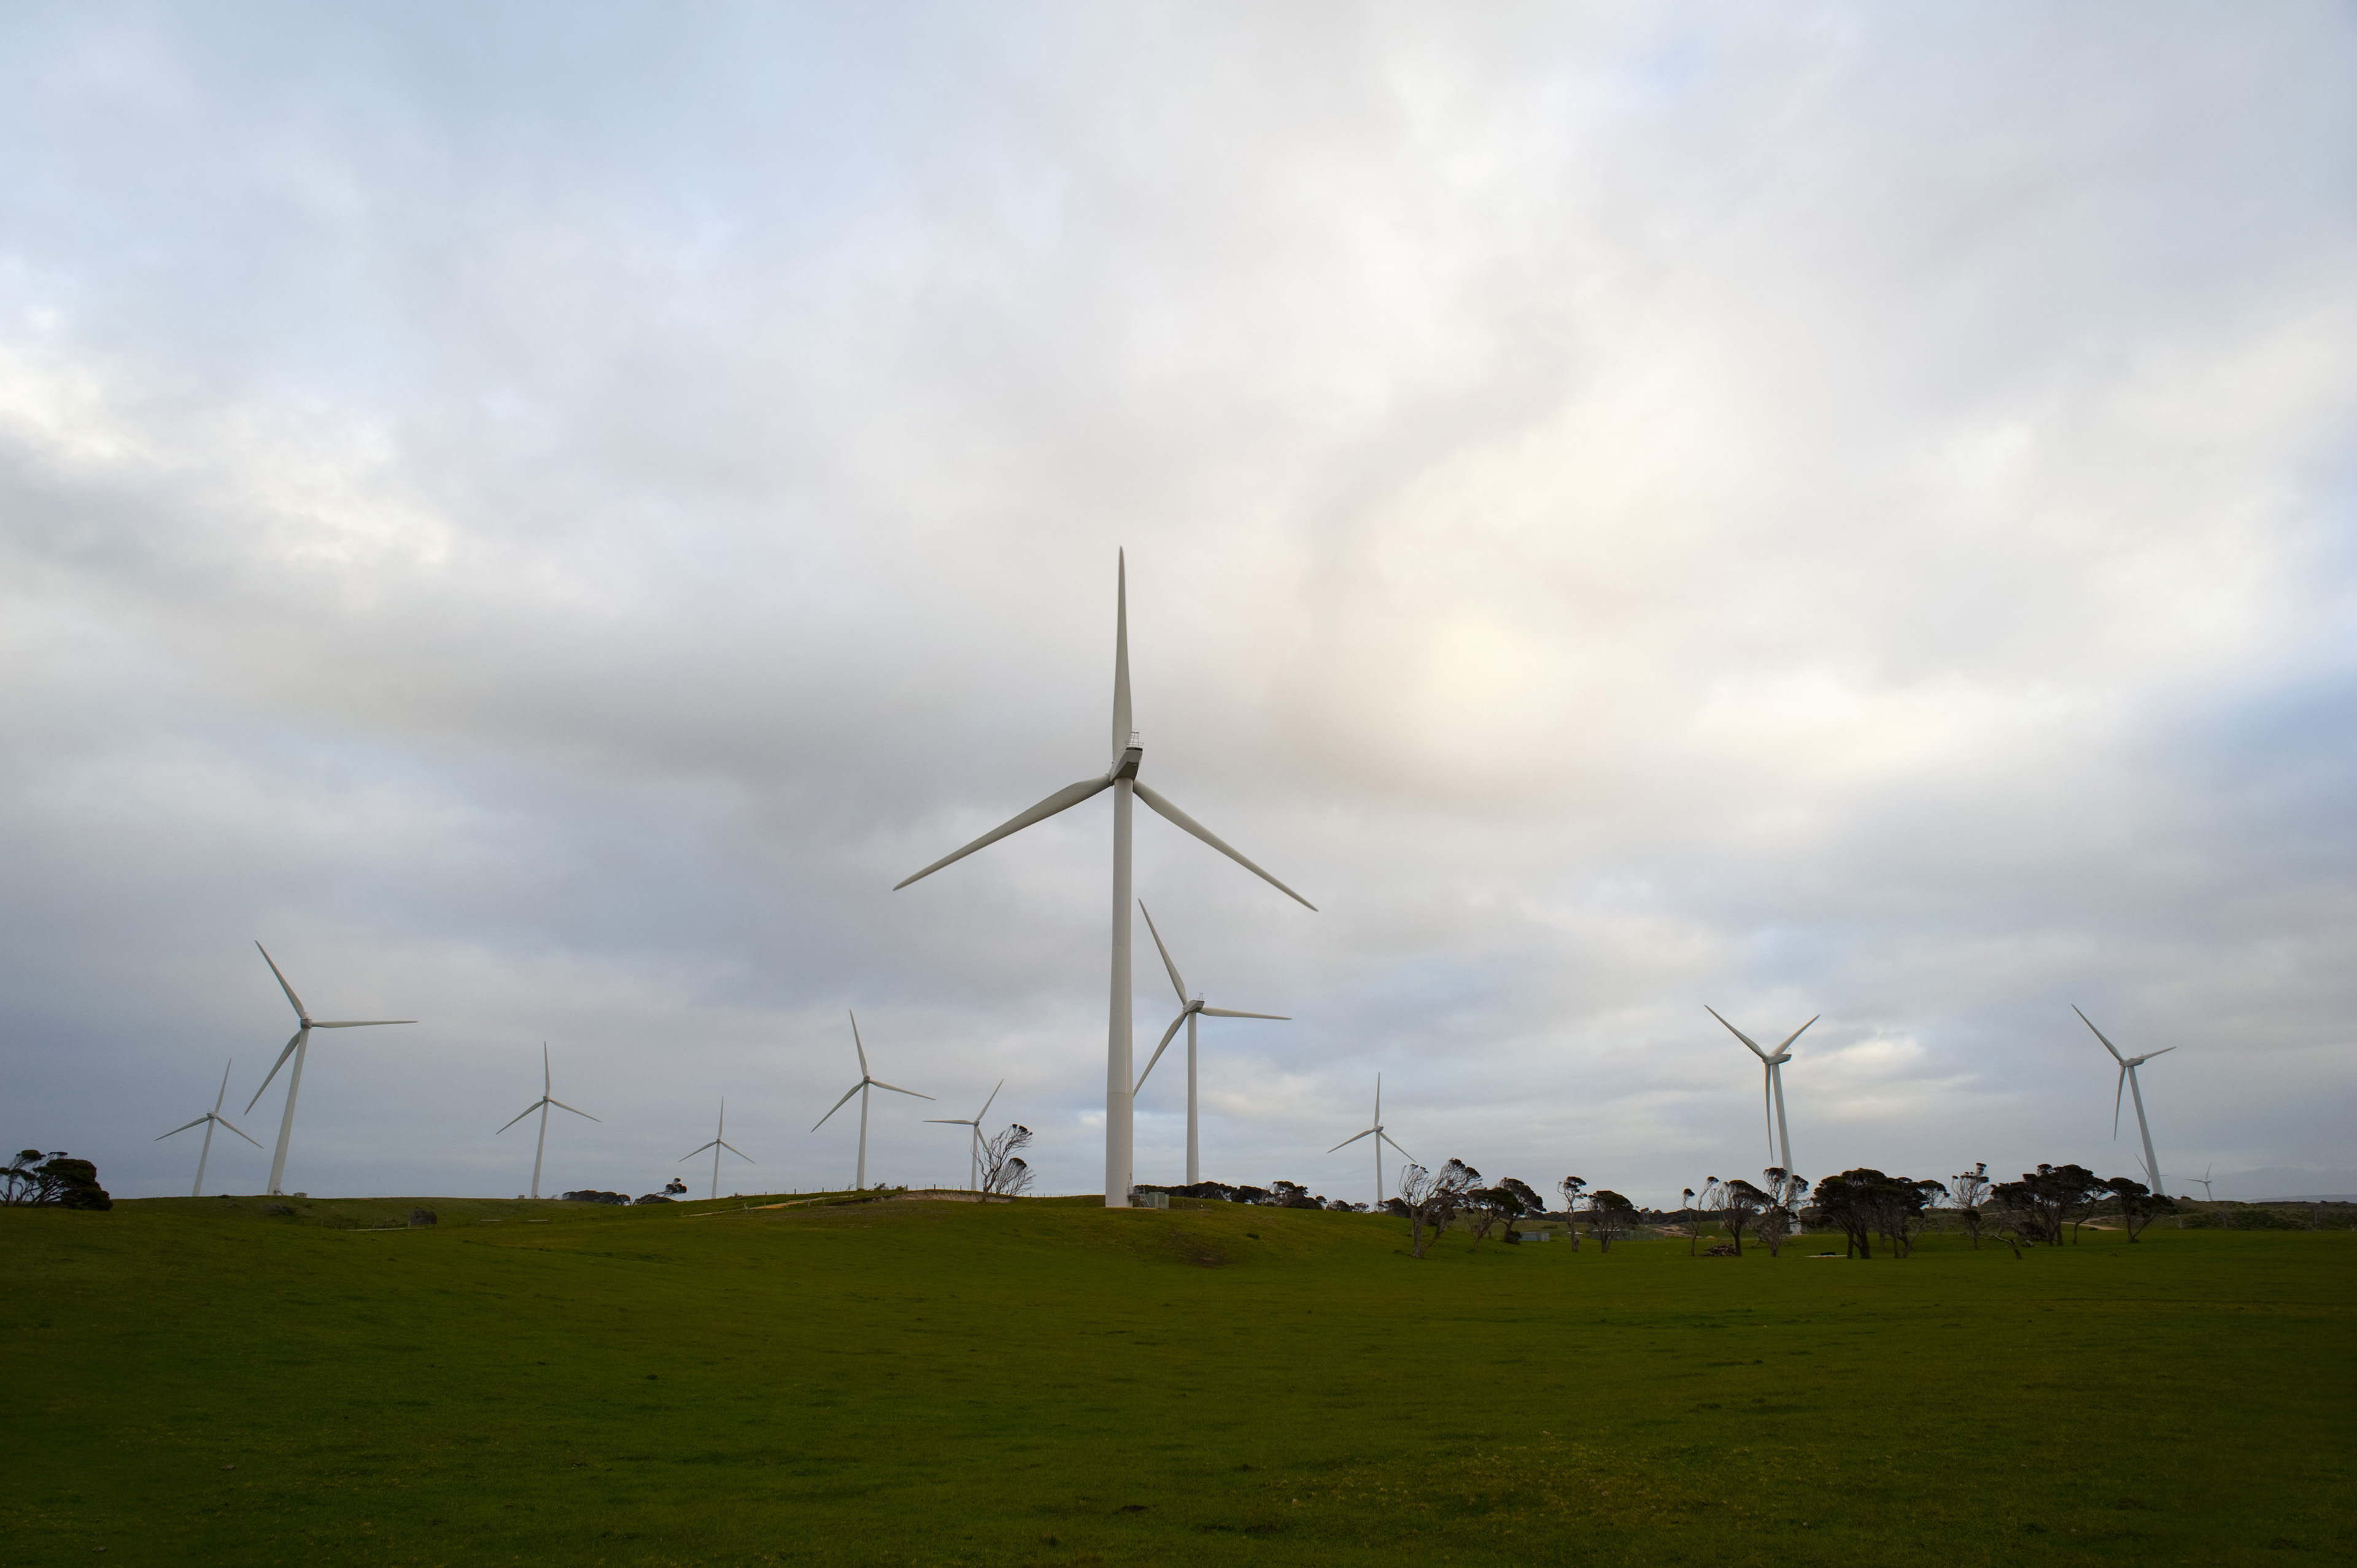 Wind farm with multiple wind turbines generating renewable alternative energy from the conversion of the kinetic energy of the wind to electricity